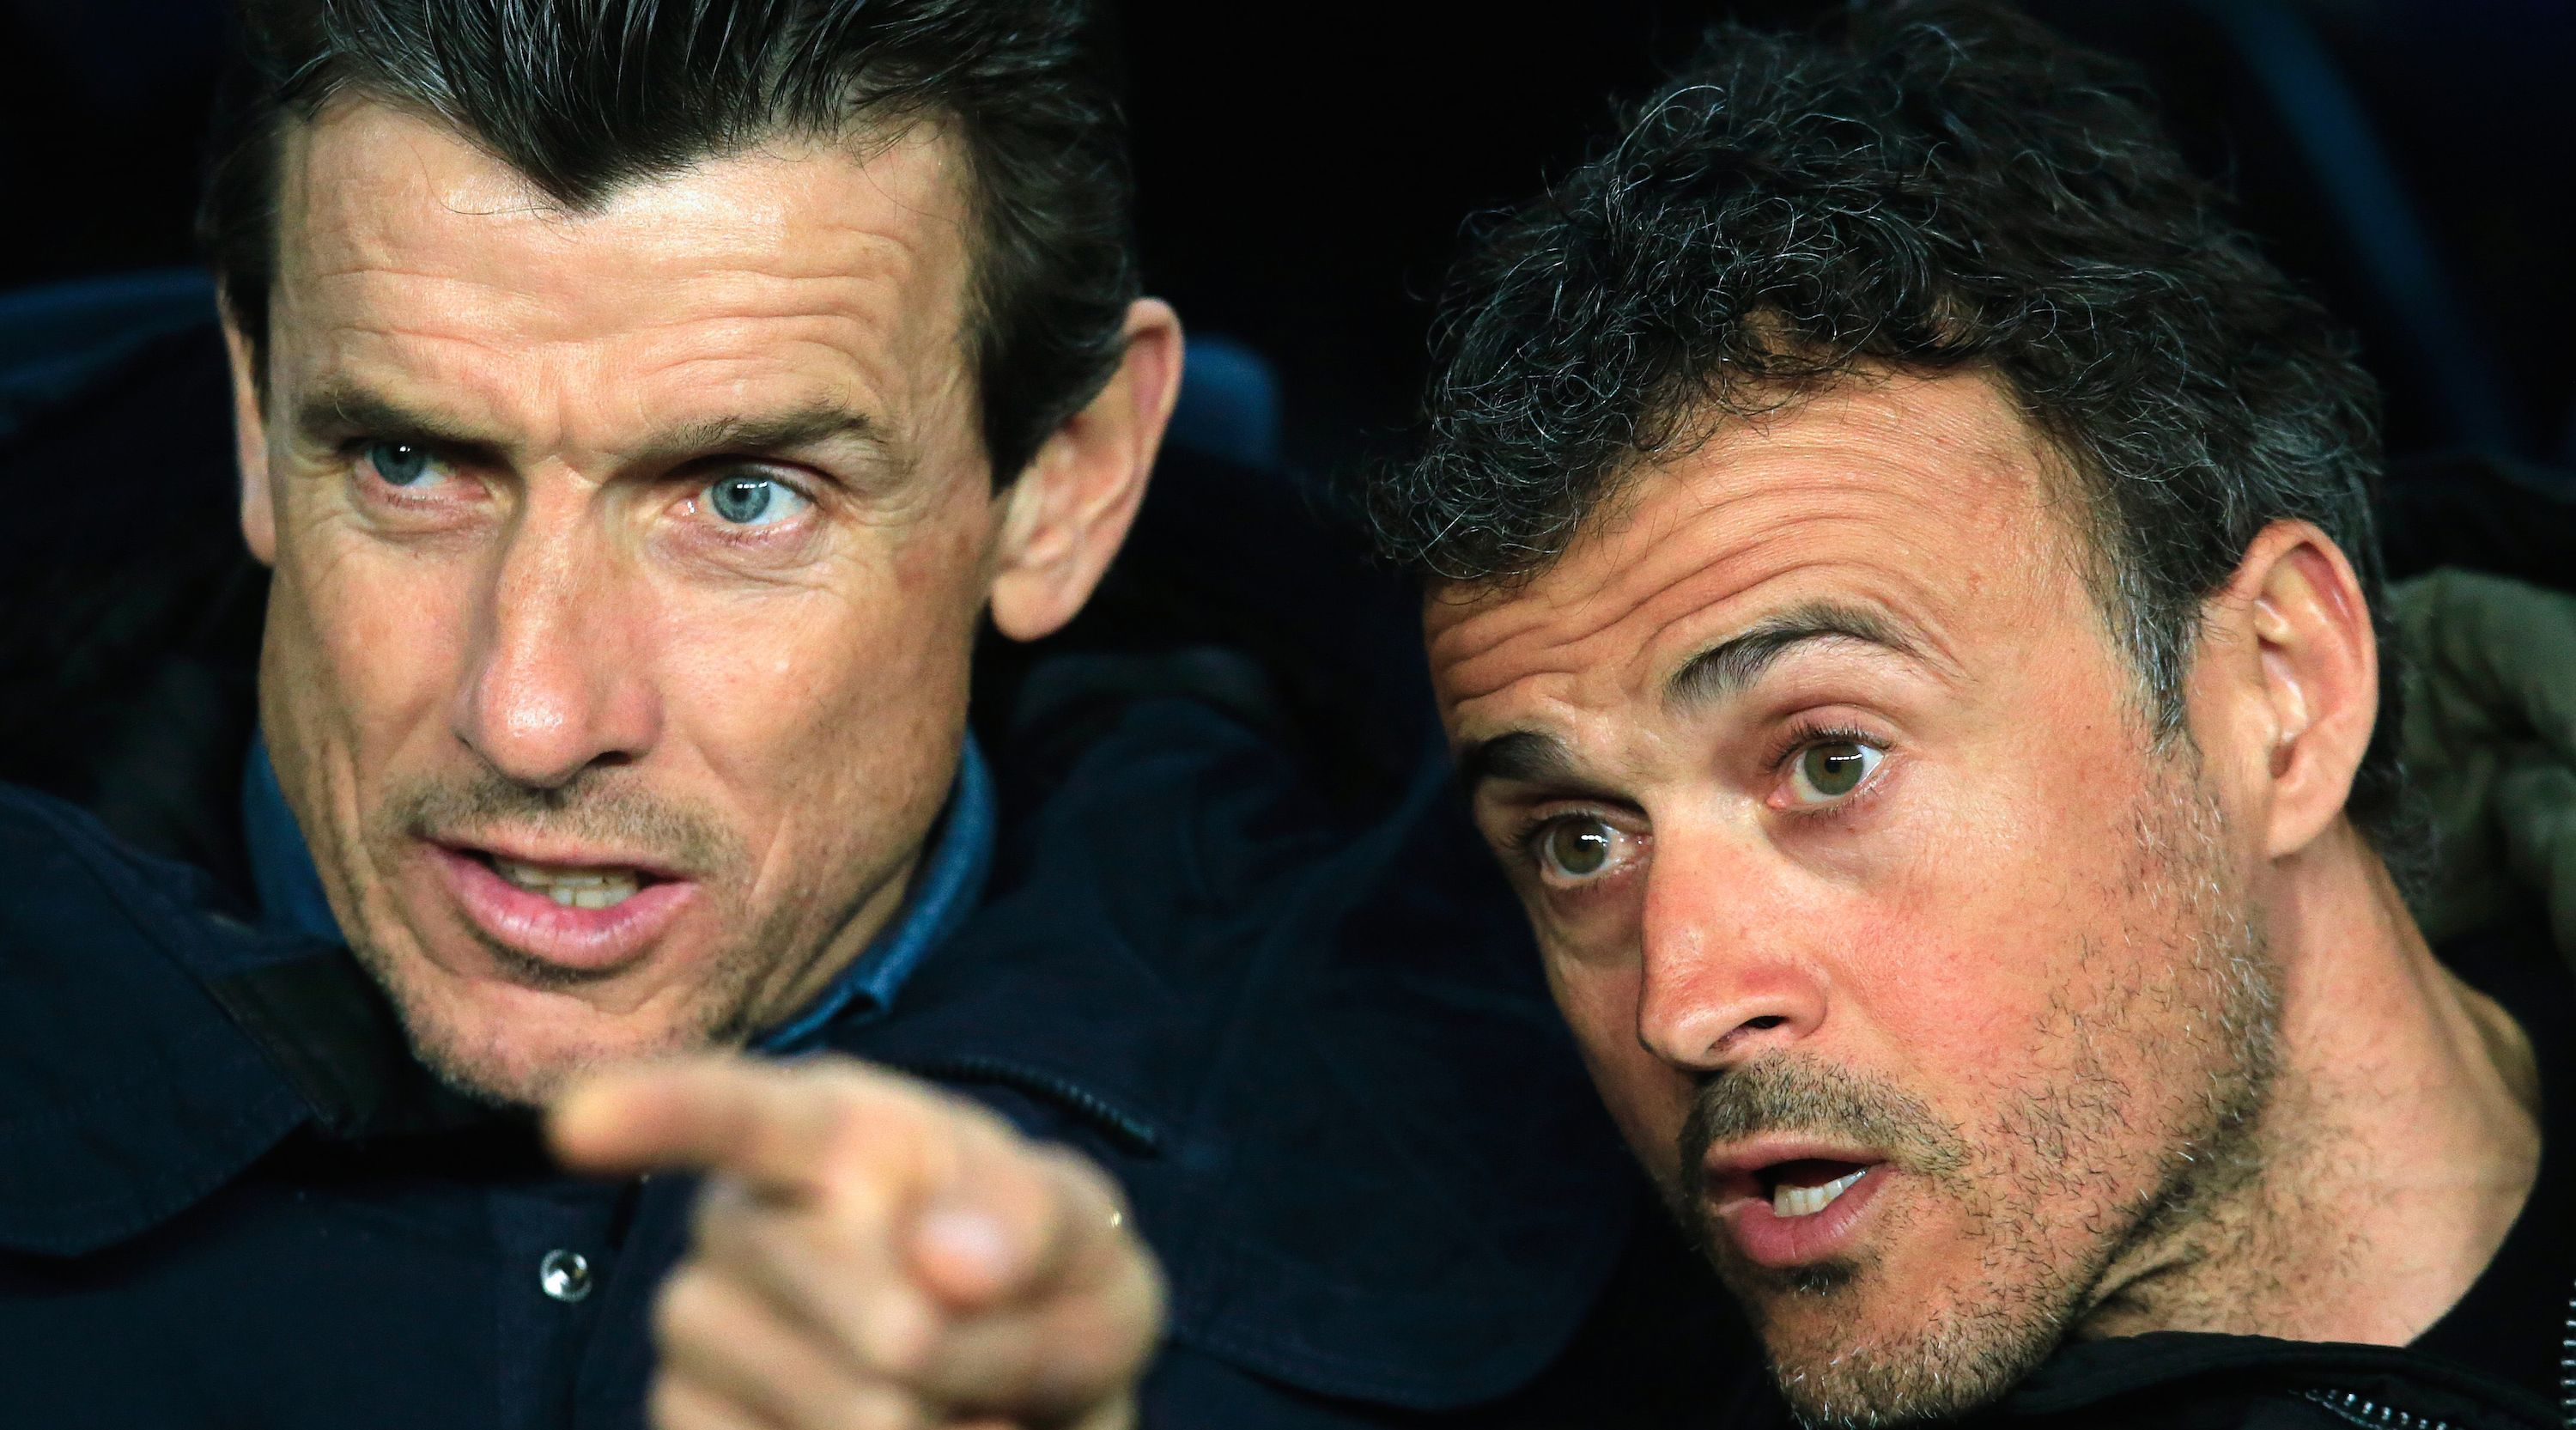 Barcelona's coach Luis Enrique (R) speaks to his assistant manager Juan Carlos Unzue before the UEFA Champions League Round of 16 second leg football match FC Barcelona vs Arsenal FC at the Camp Nou stadium in Barcelona on March 16, 2016. / AFP / PAU BARRENA (Photo credit should read PAU BARRENA/AFP/Getty Images)